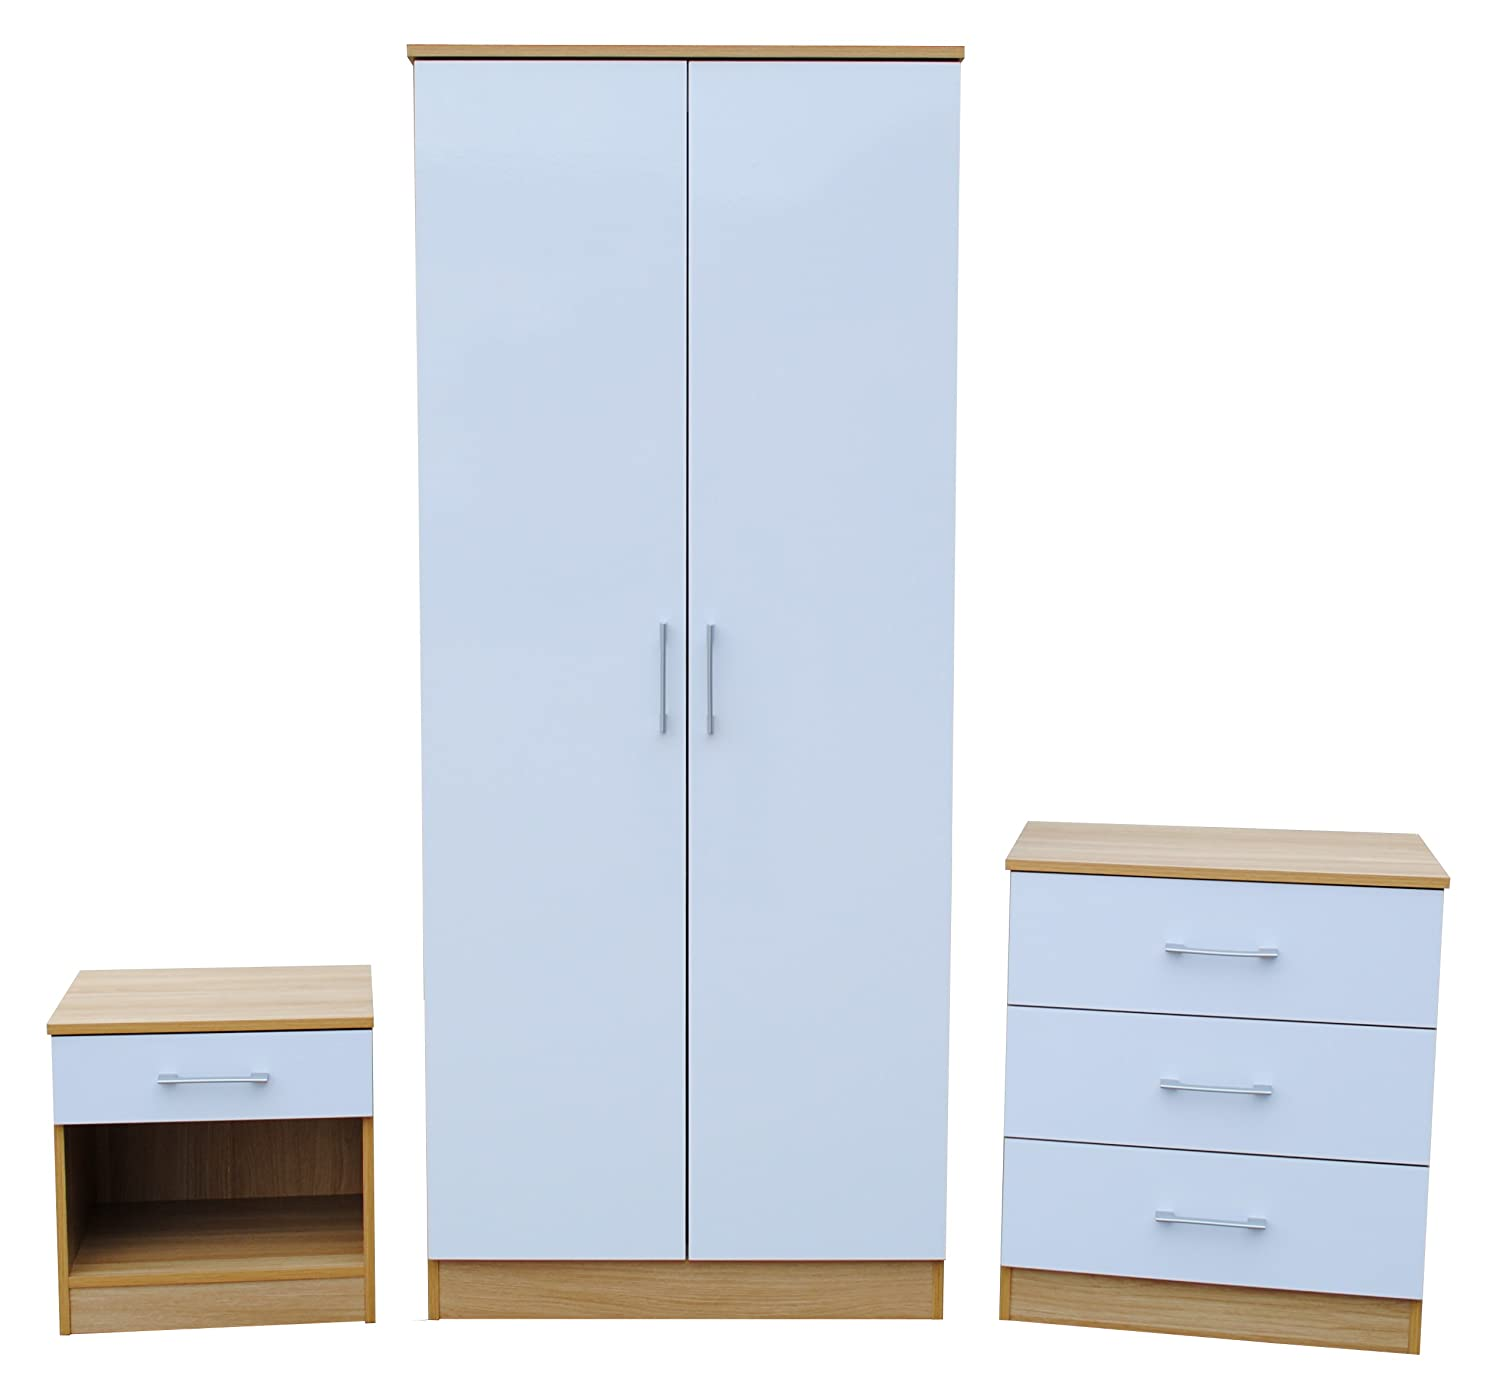 NEW High Gloss 3 Piece Trio Bedroom Set Wardrobe Bedside Chest - Gloss White & Oak .Dimensions: Wardrobe: H180 x W 76 x D 47 cm. 3 Drawer Chest: H 69 x W 60 x D 40 cm. Bedside Chest: H 46 x W 45 x D35 cm. [Energy Class A+++]